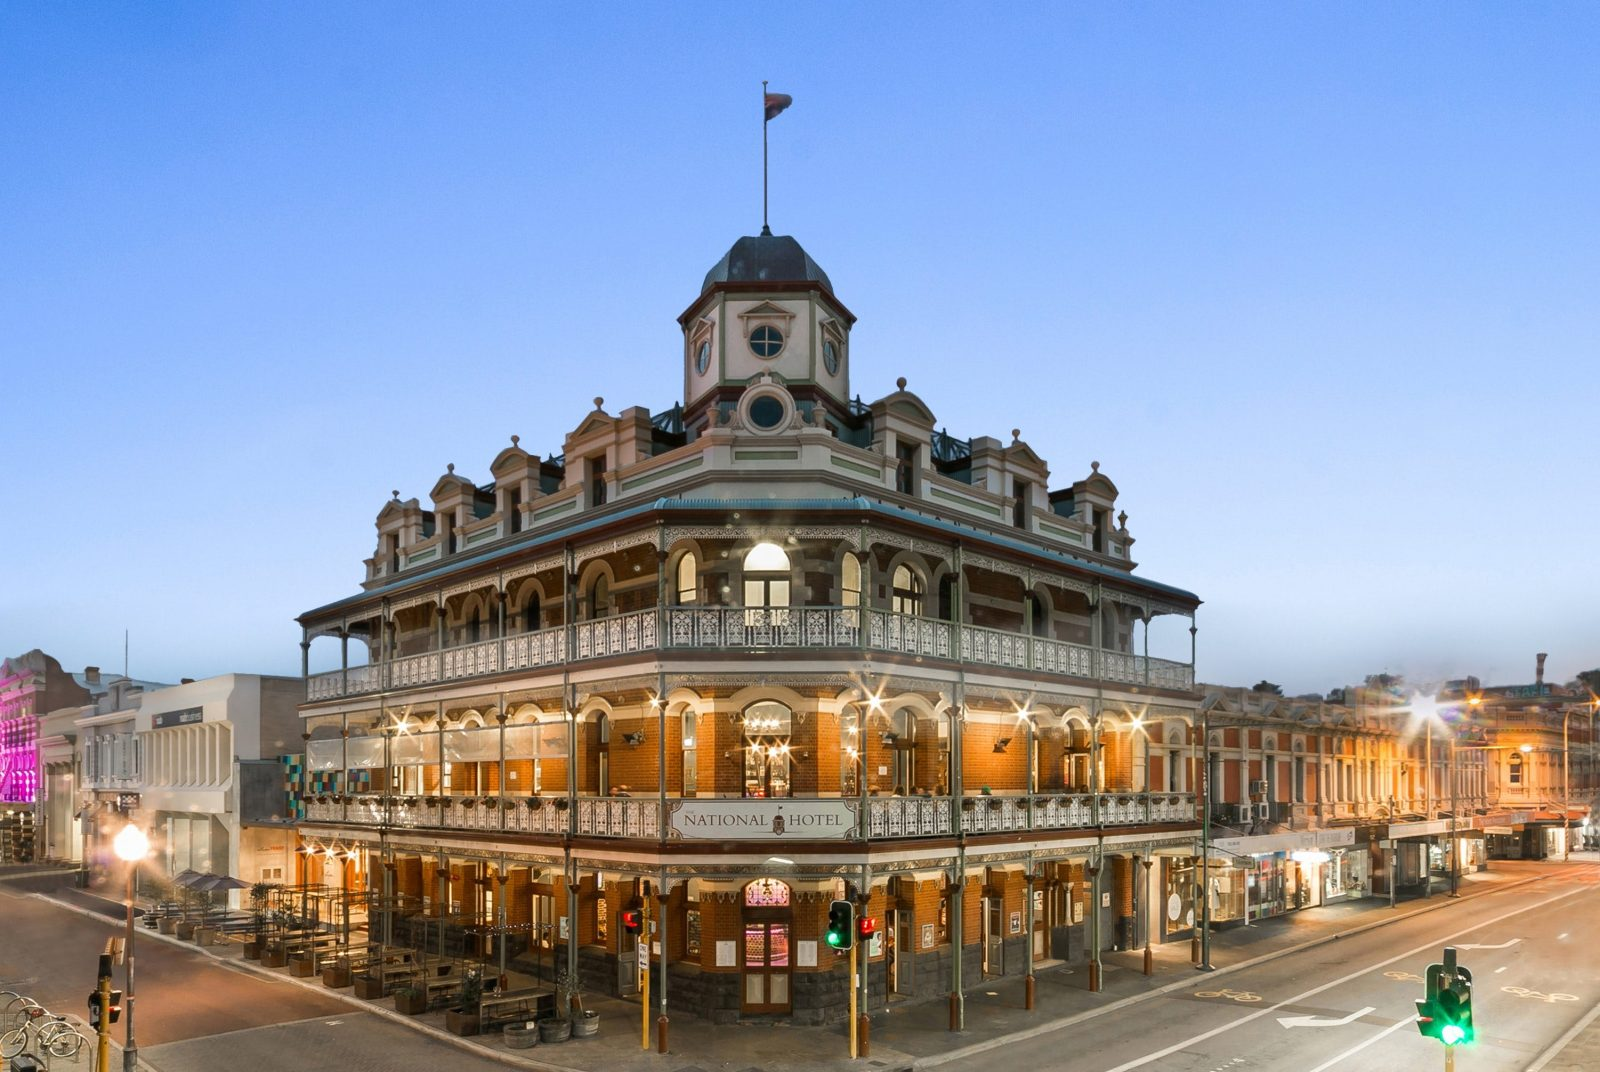 The National Hotel, Fremantle, Western Australia